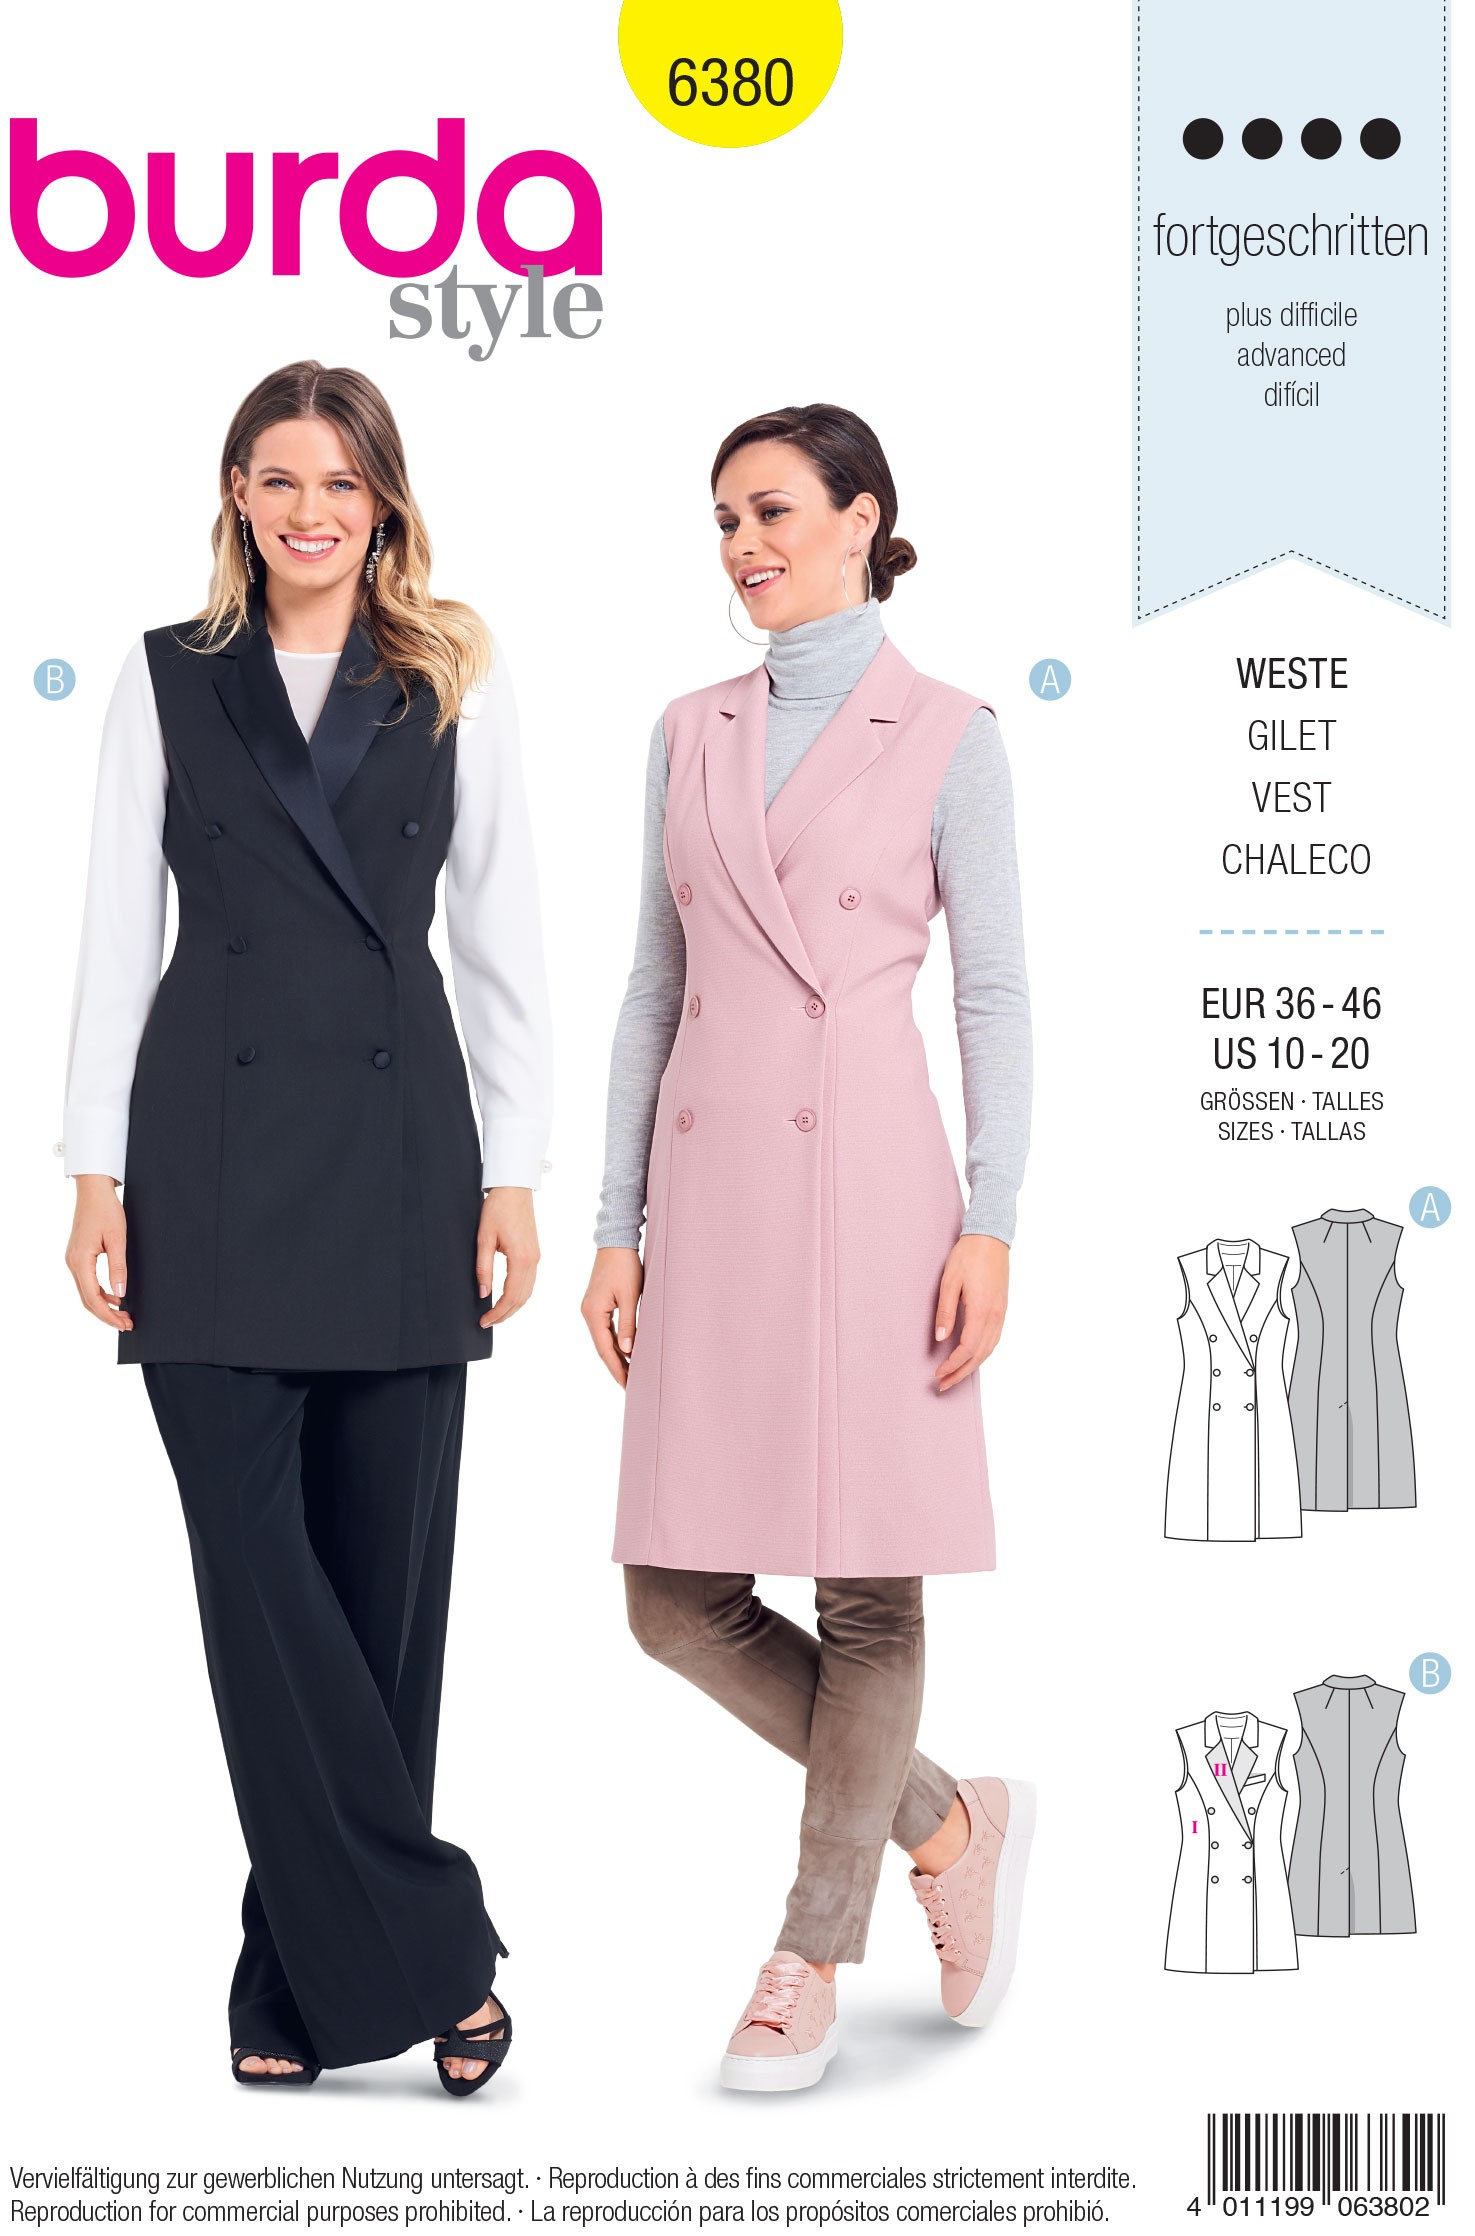 Burda Sewing Pattern 6380 Style Woman's Stylish Double Breasted Coat